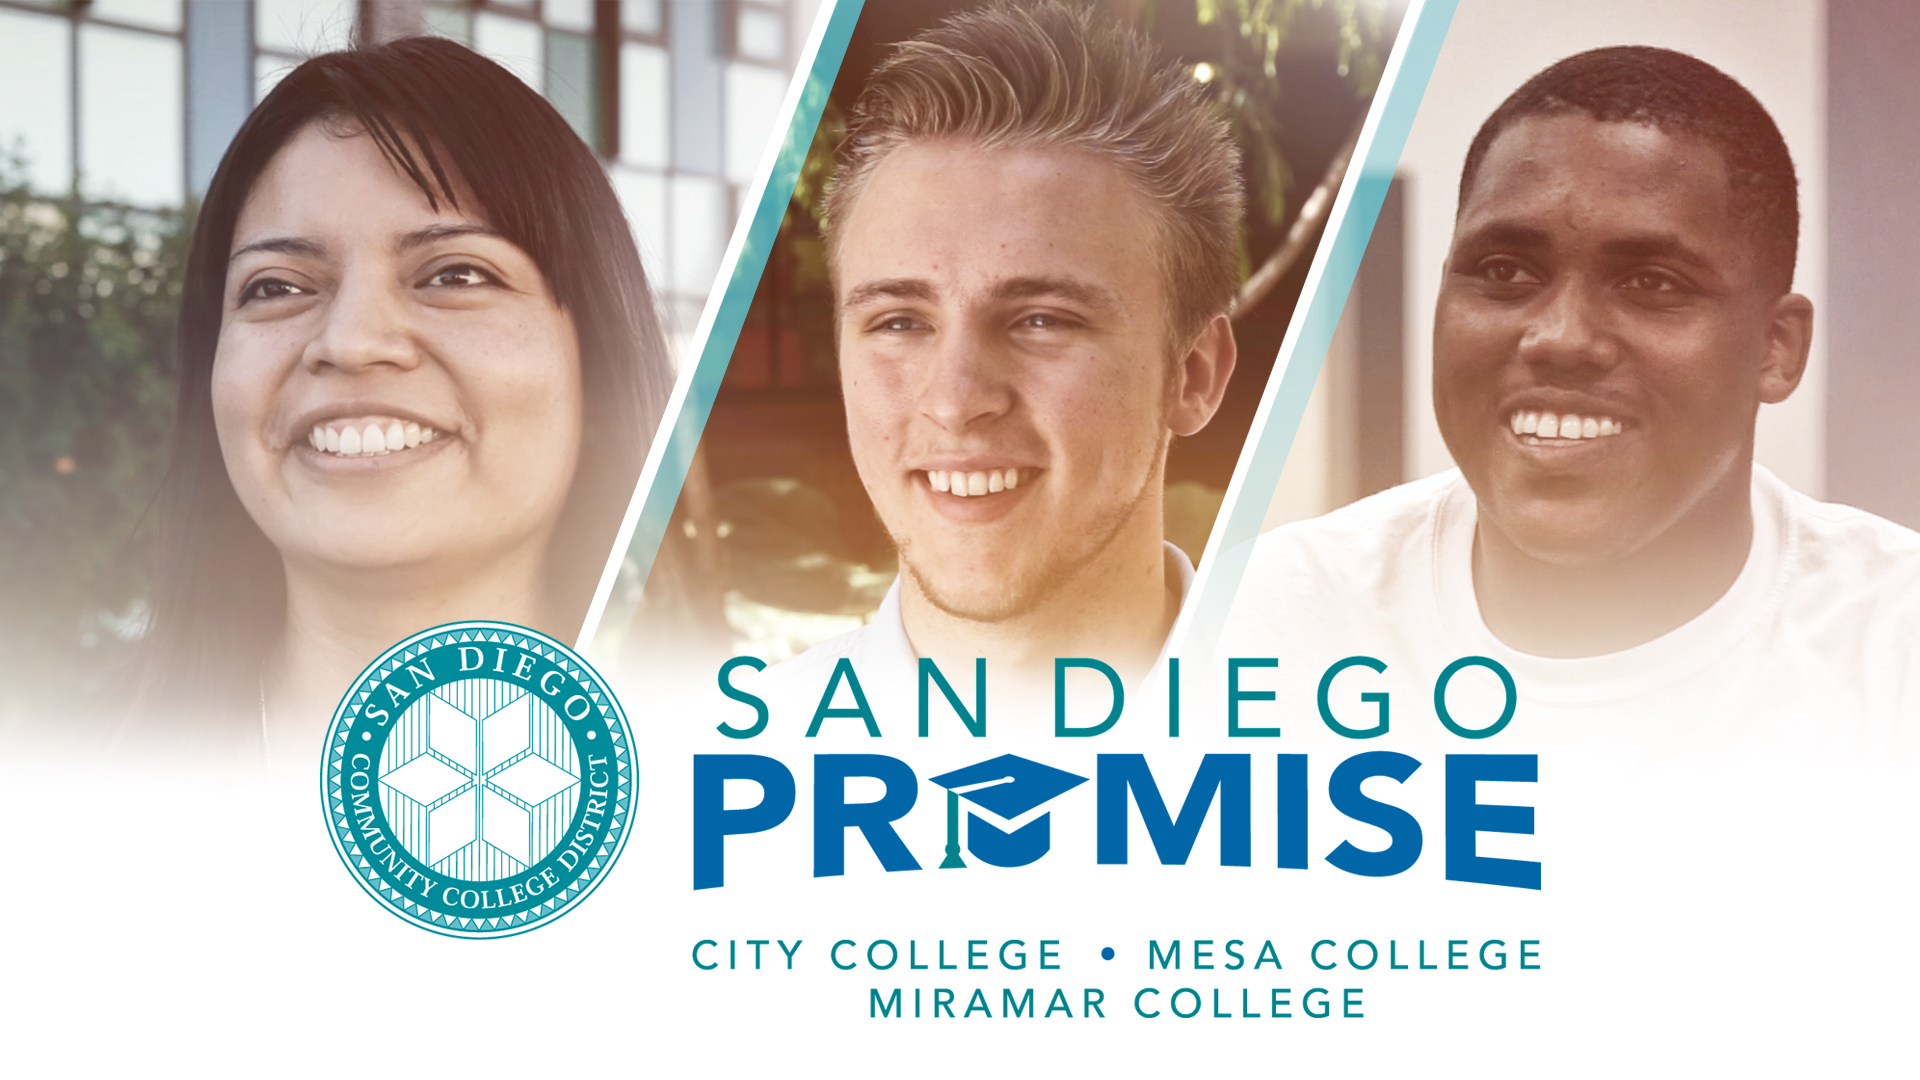 Meet the students of the San Diego Promise program